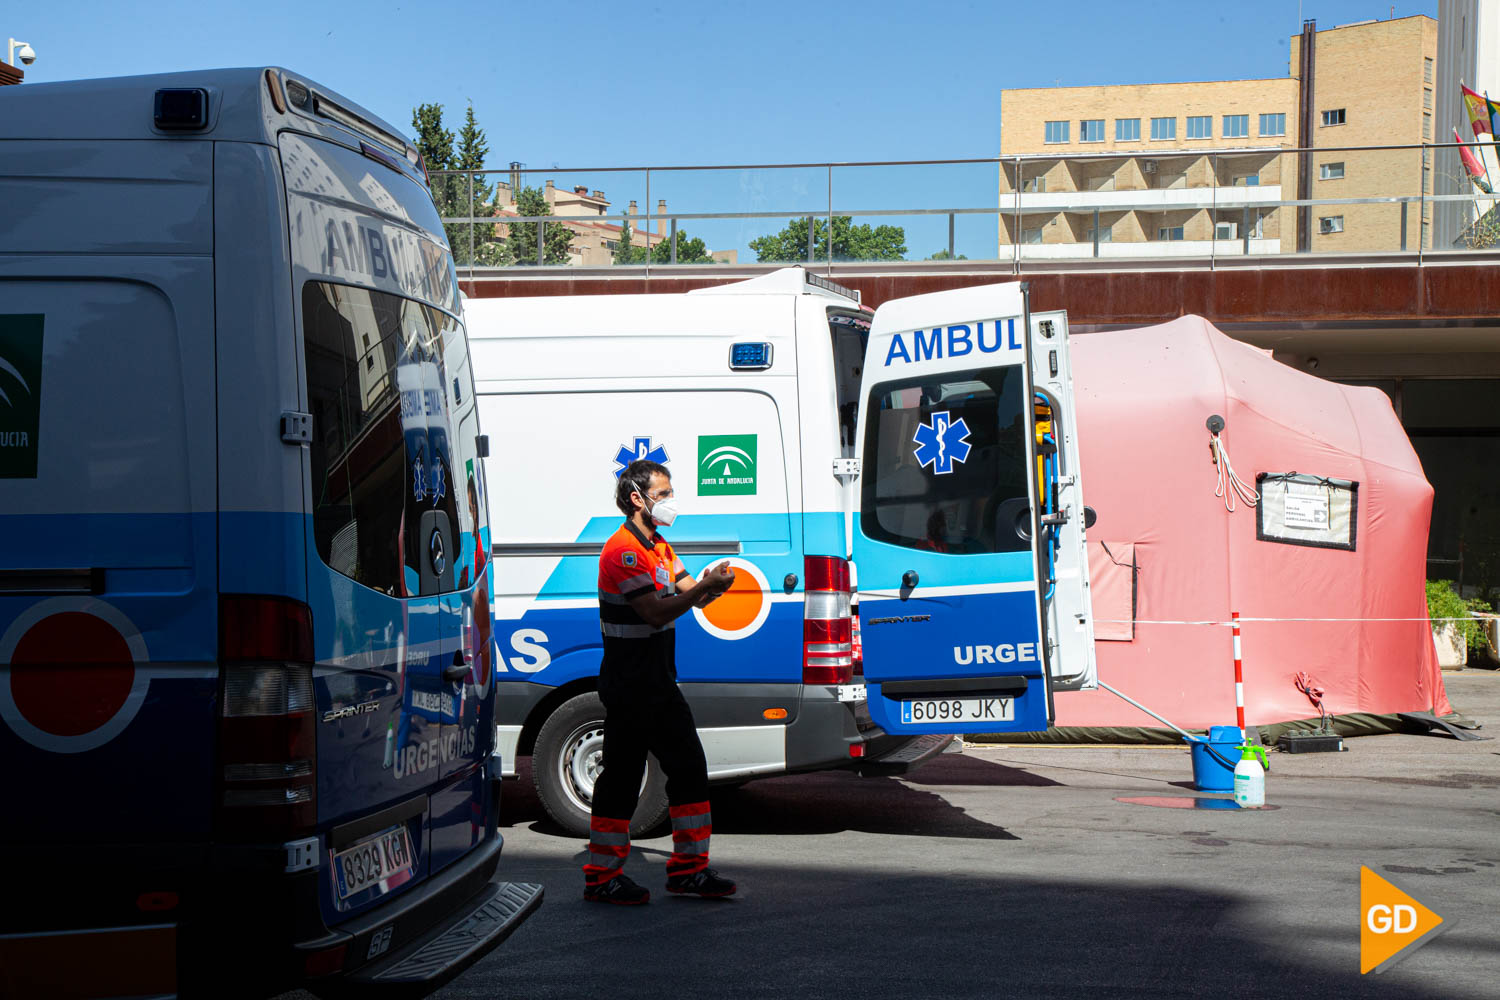 FOTOS HOSPITALES AMBULANCIAS Y SANITARIOS (3)